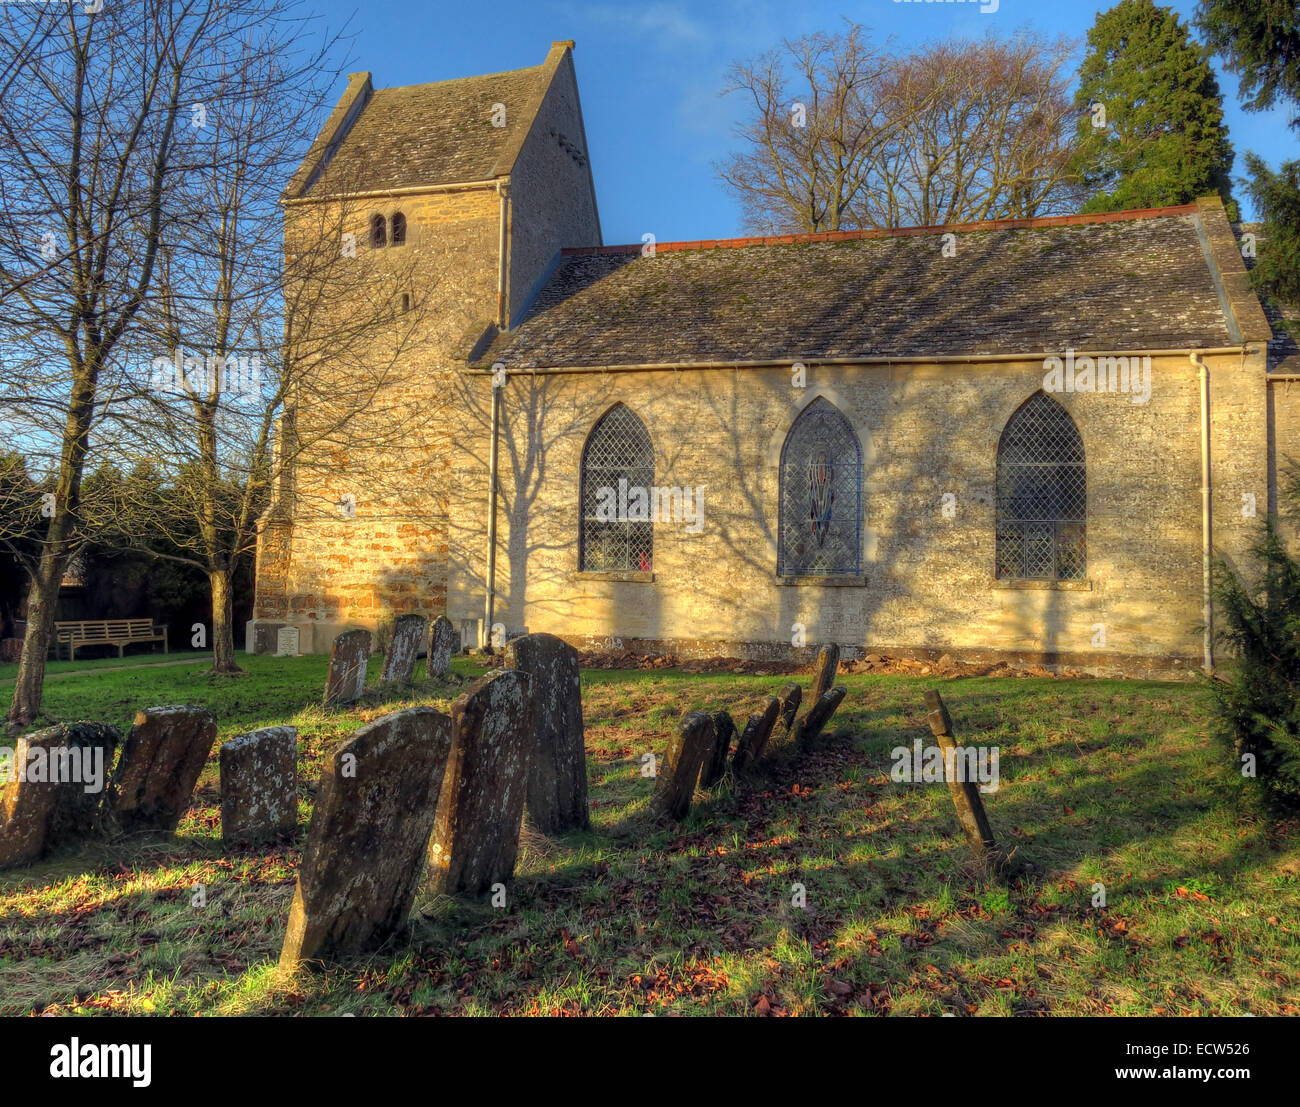 Oxen Oxon United Kingdom,UK,English,Saint,Marys,Church,of,chancel,and,the,bell,tower,2000,new,art,artwork,Norman,stonework,Early,Gothic,chancel,Cherwell,Valley,Benefice,middle,window,on,south,side,of,nave,built,in,1792,GotonySmith Ardley with Fewcott civil parish in Oxfordshire,England,early,in,the,21st,century,postcard,classic,historic,history,ecclesiastical,parishes,Fritwell,Lower Heyford,Somerton,Souldern and Upper Heyford,Buy Pictures of,Buy Images Of